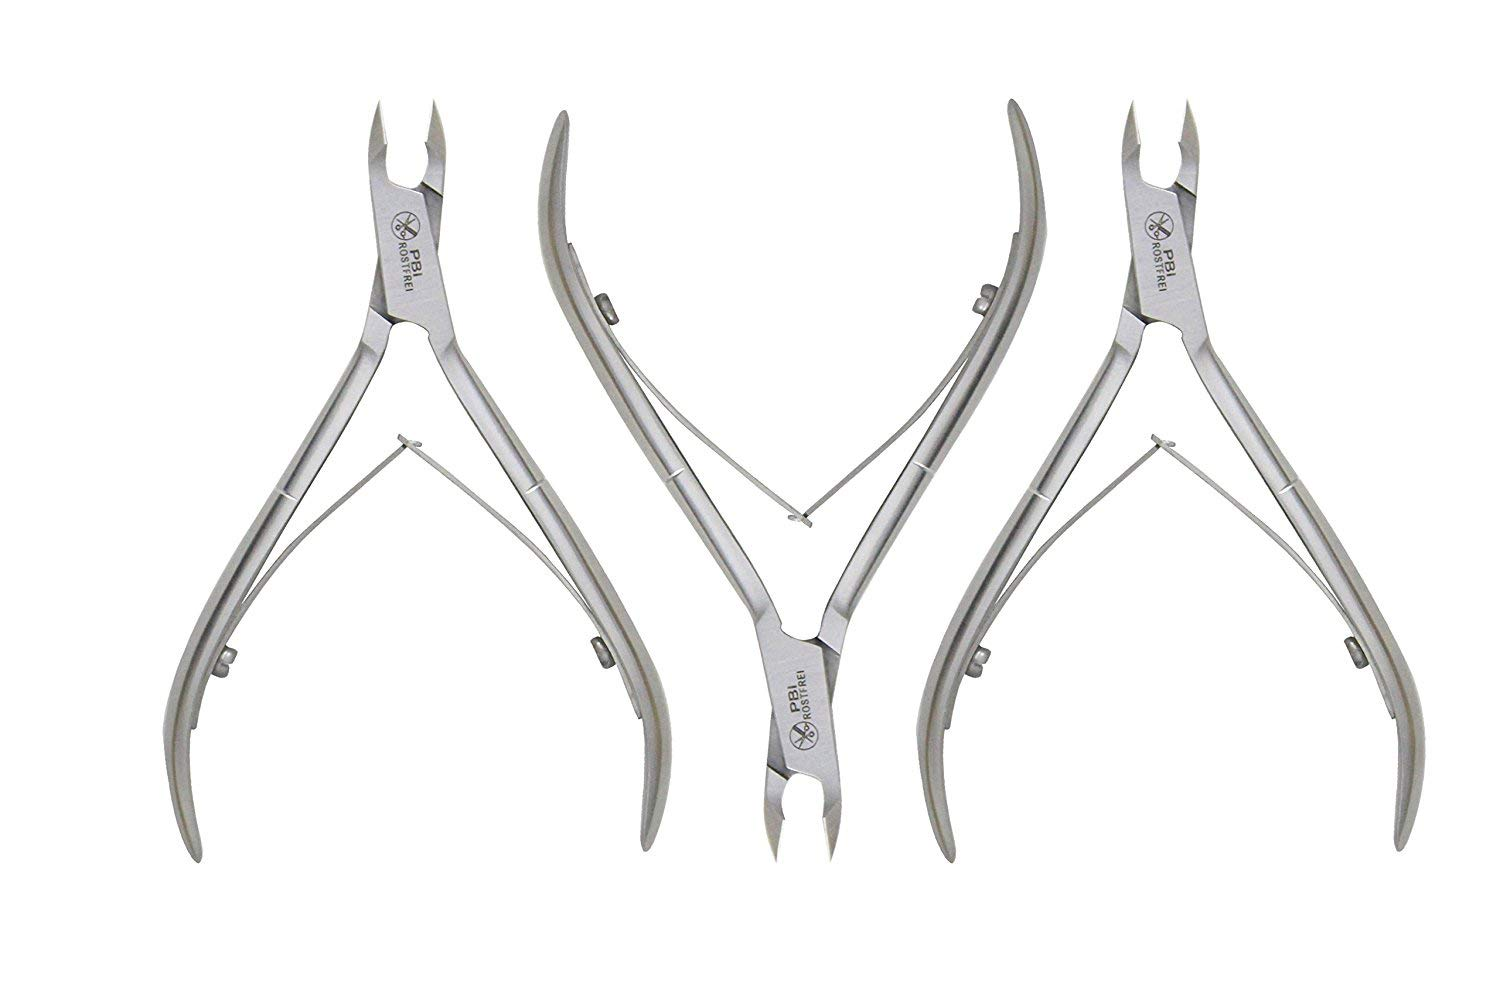 Professional Cuticle nipper - cuticle plier - manicure pedicure cuticle nipper - double spring cuticles plier - 4 inch - 3 pieces set - Stainless steel from PBI